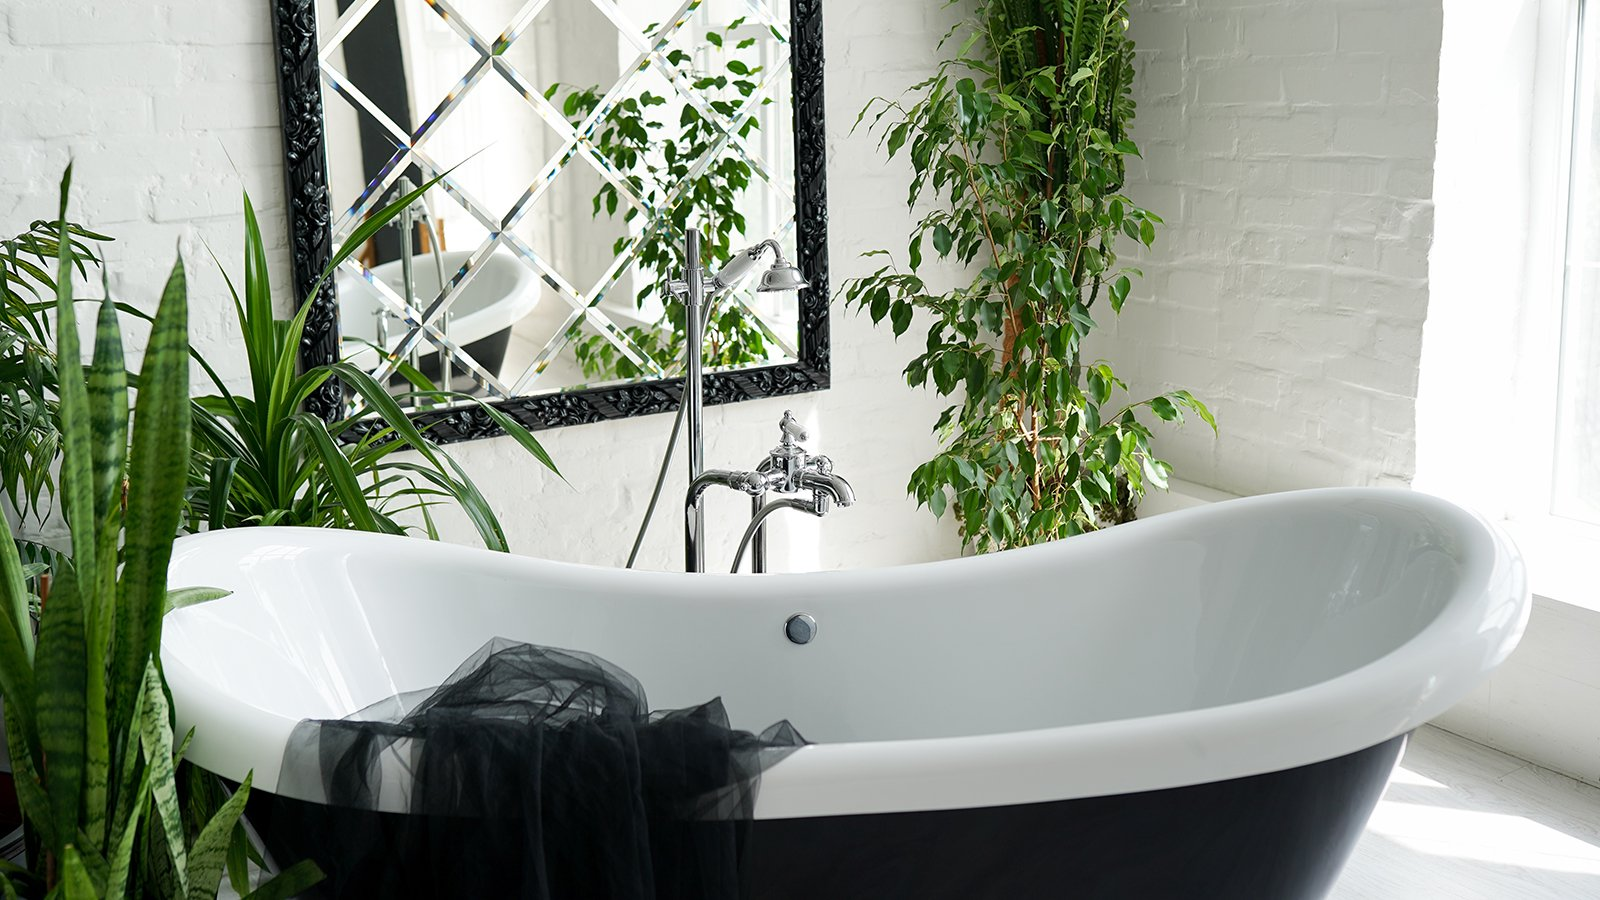 Bathtub and green plants in bathroom interior in luxury home